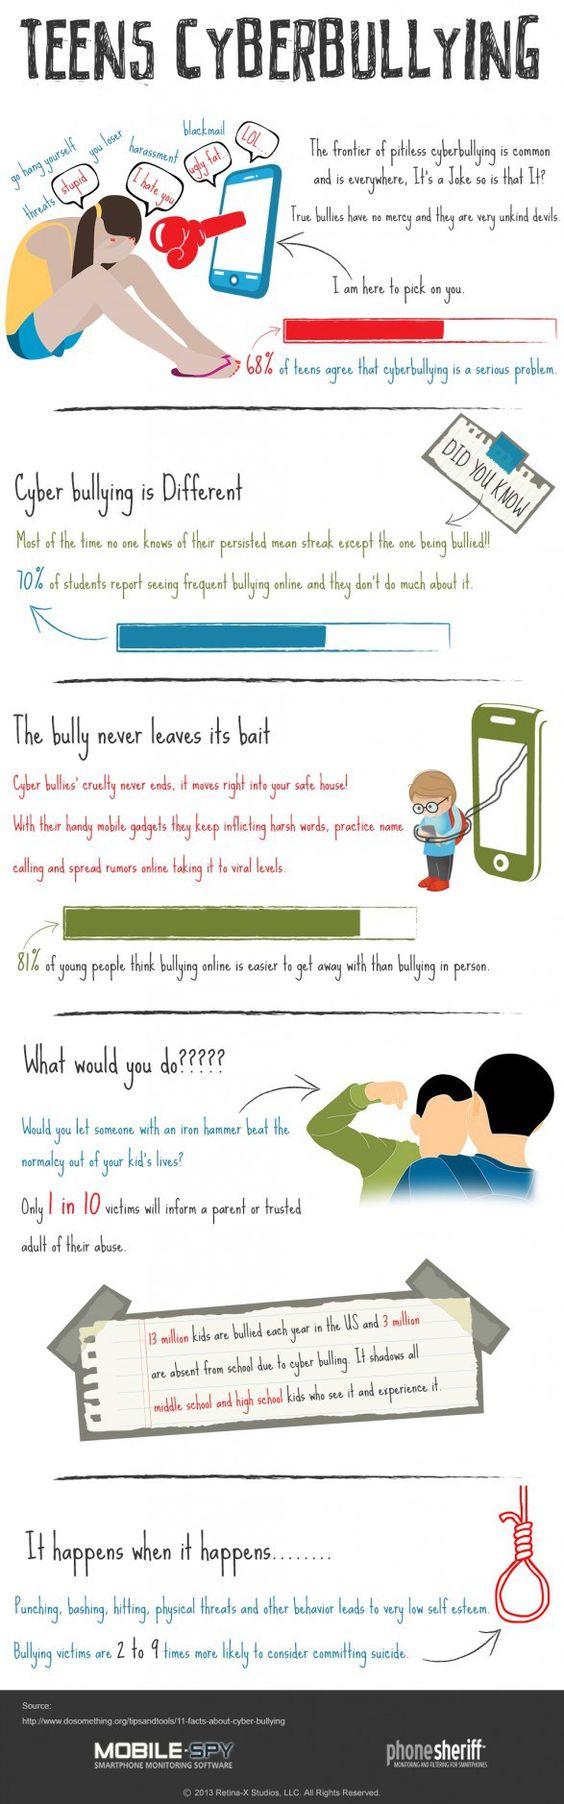 Cyberbullying infographic - Parents: